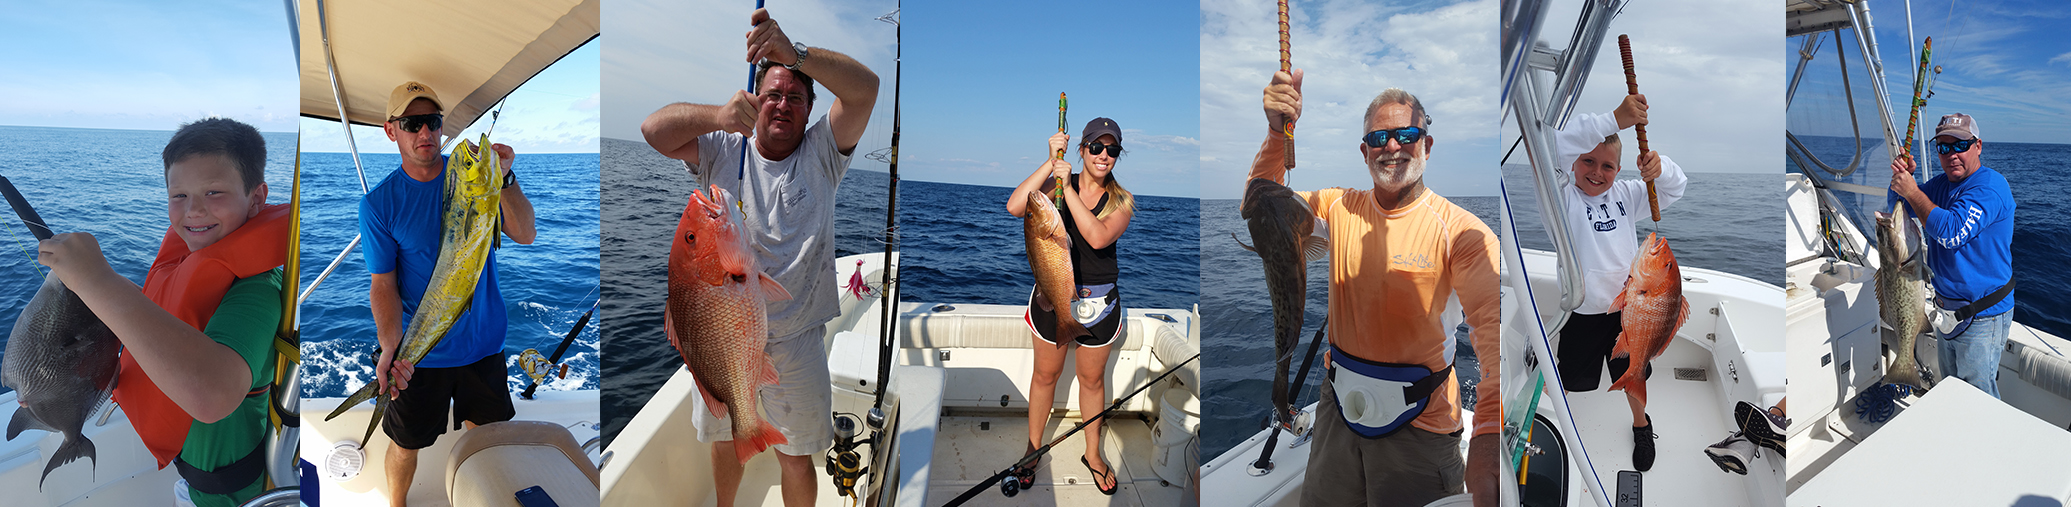 Destin Offshore & Inshore Fishing with Semper Fish Charters